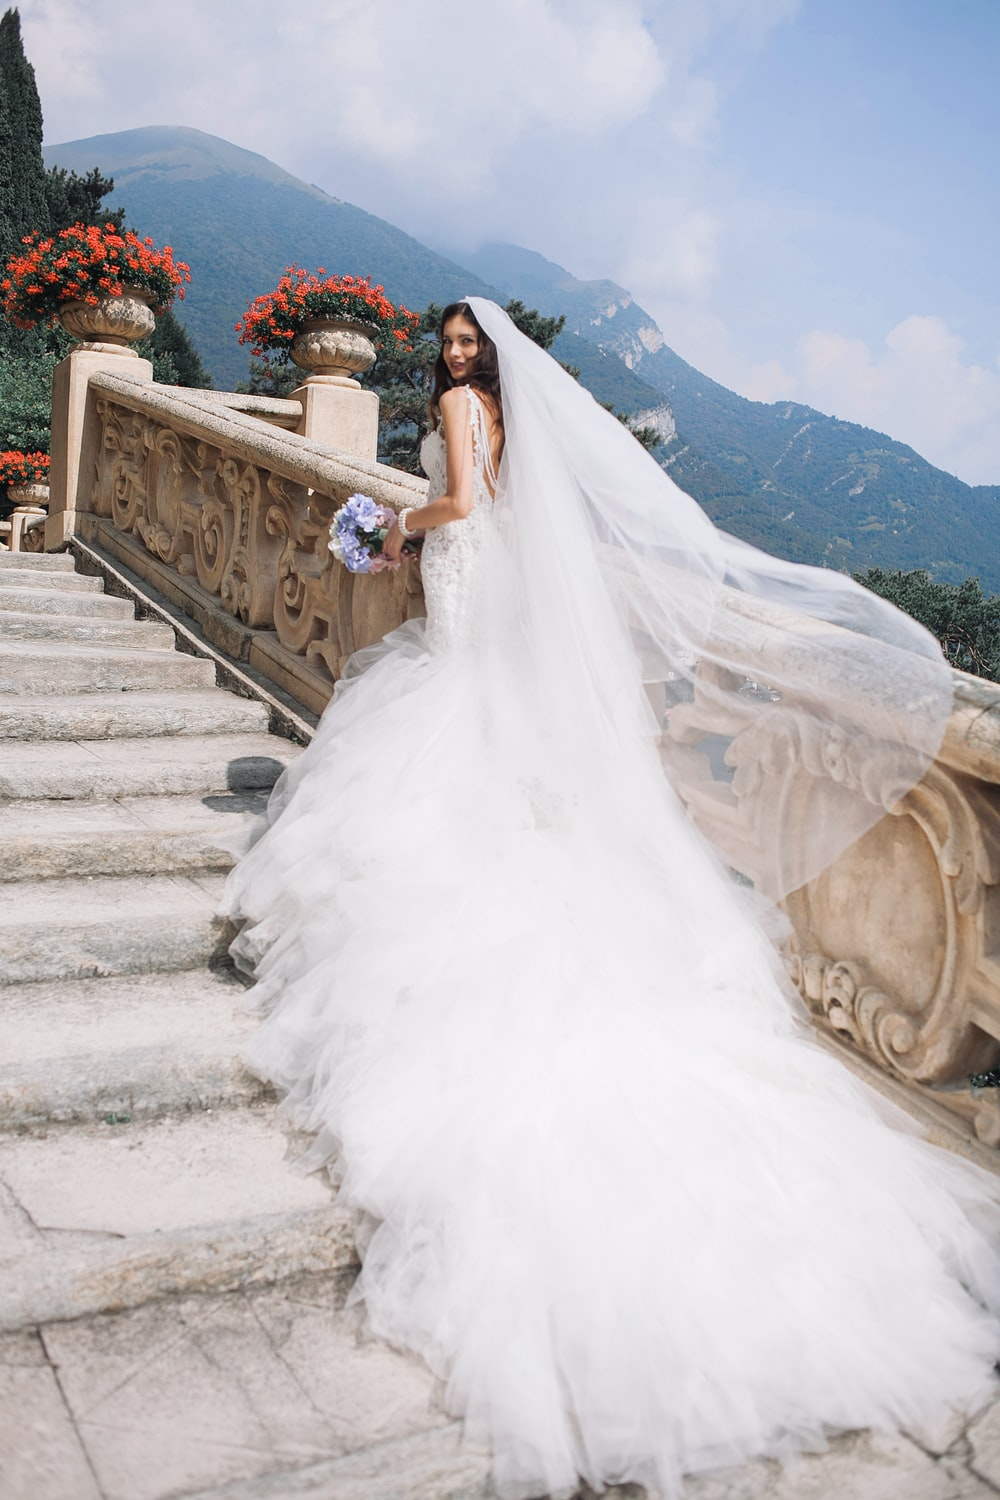 Bridge in white wedding dress walking up stairs with mountains in the background